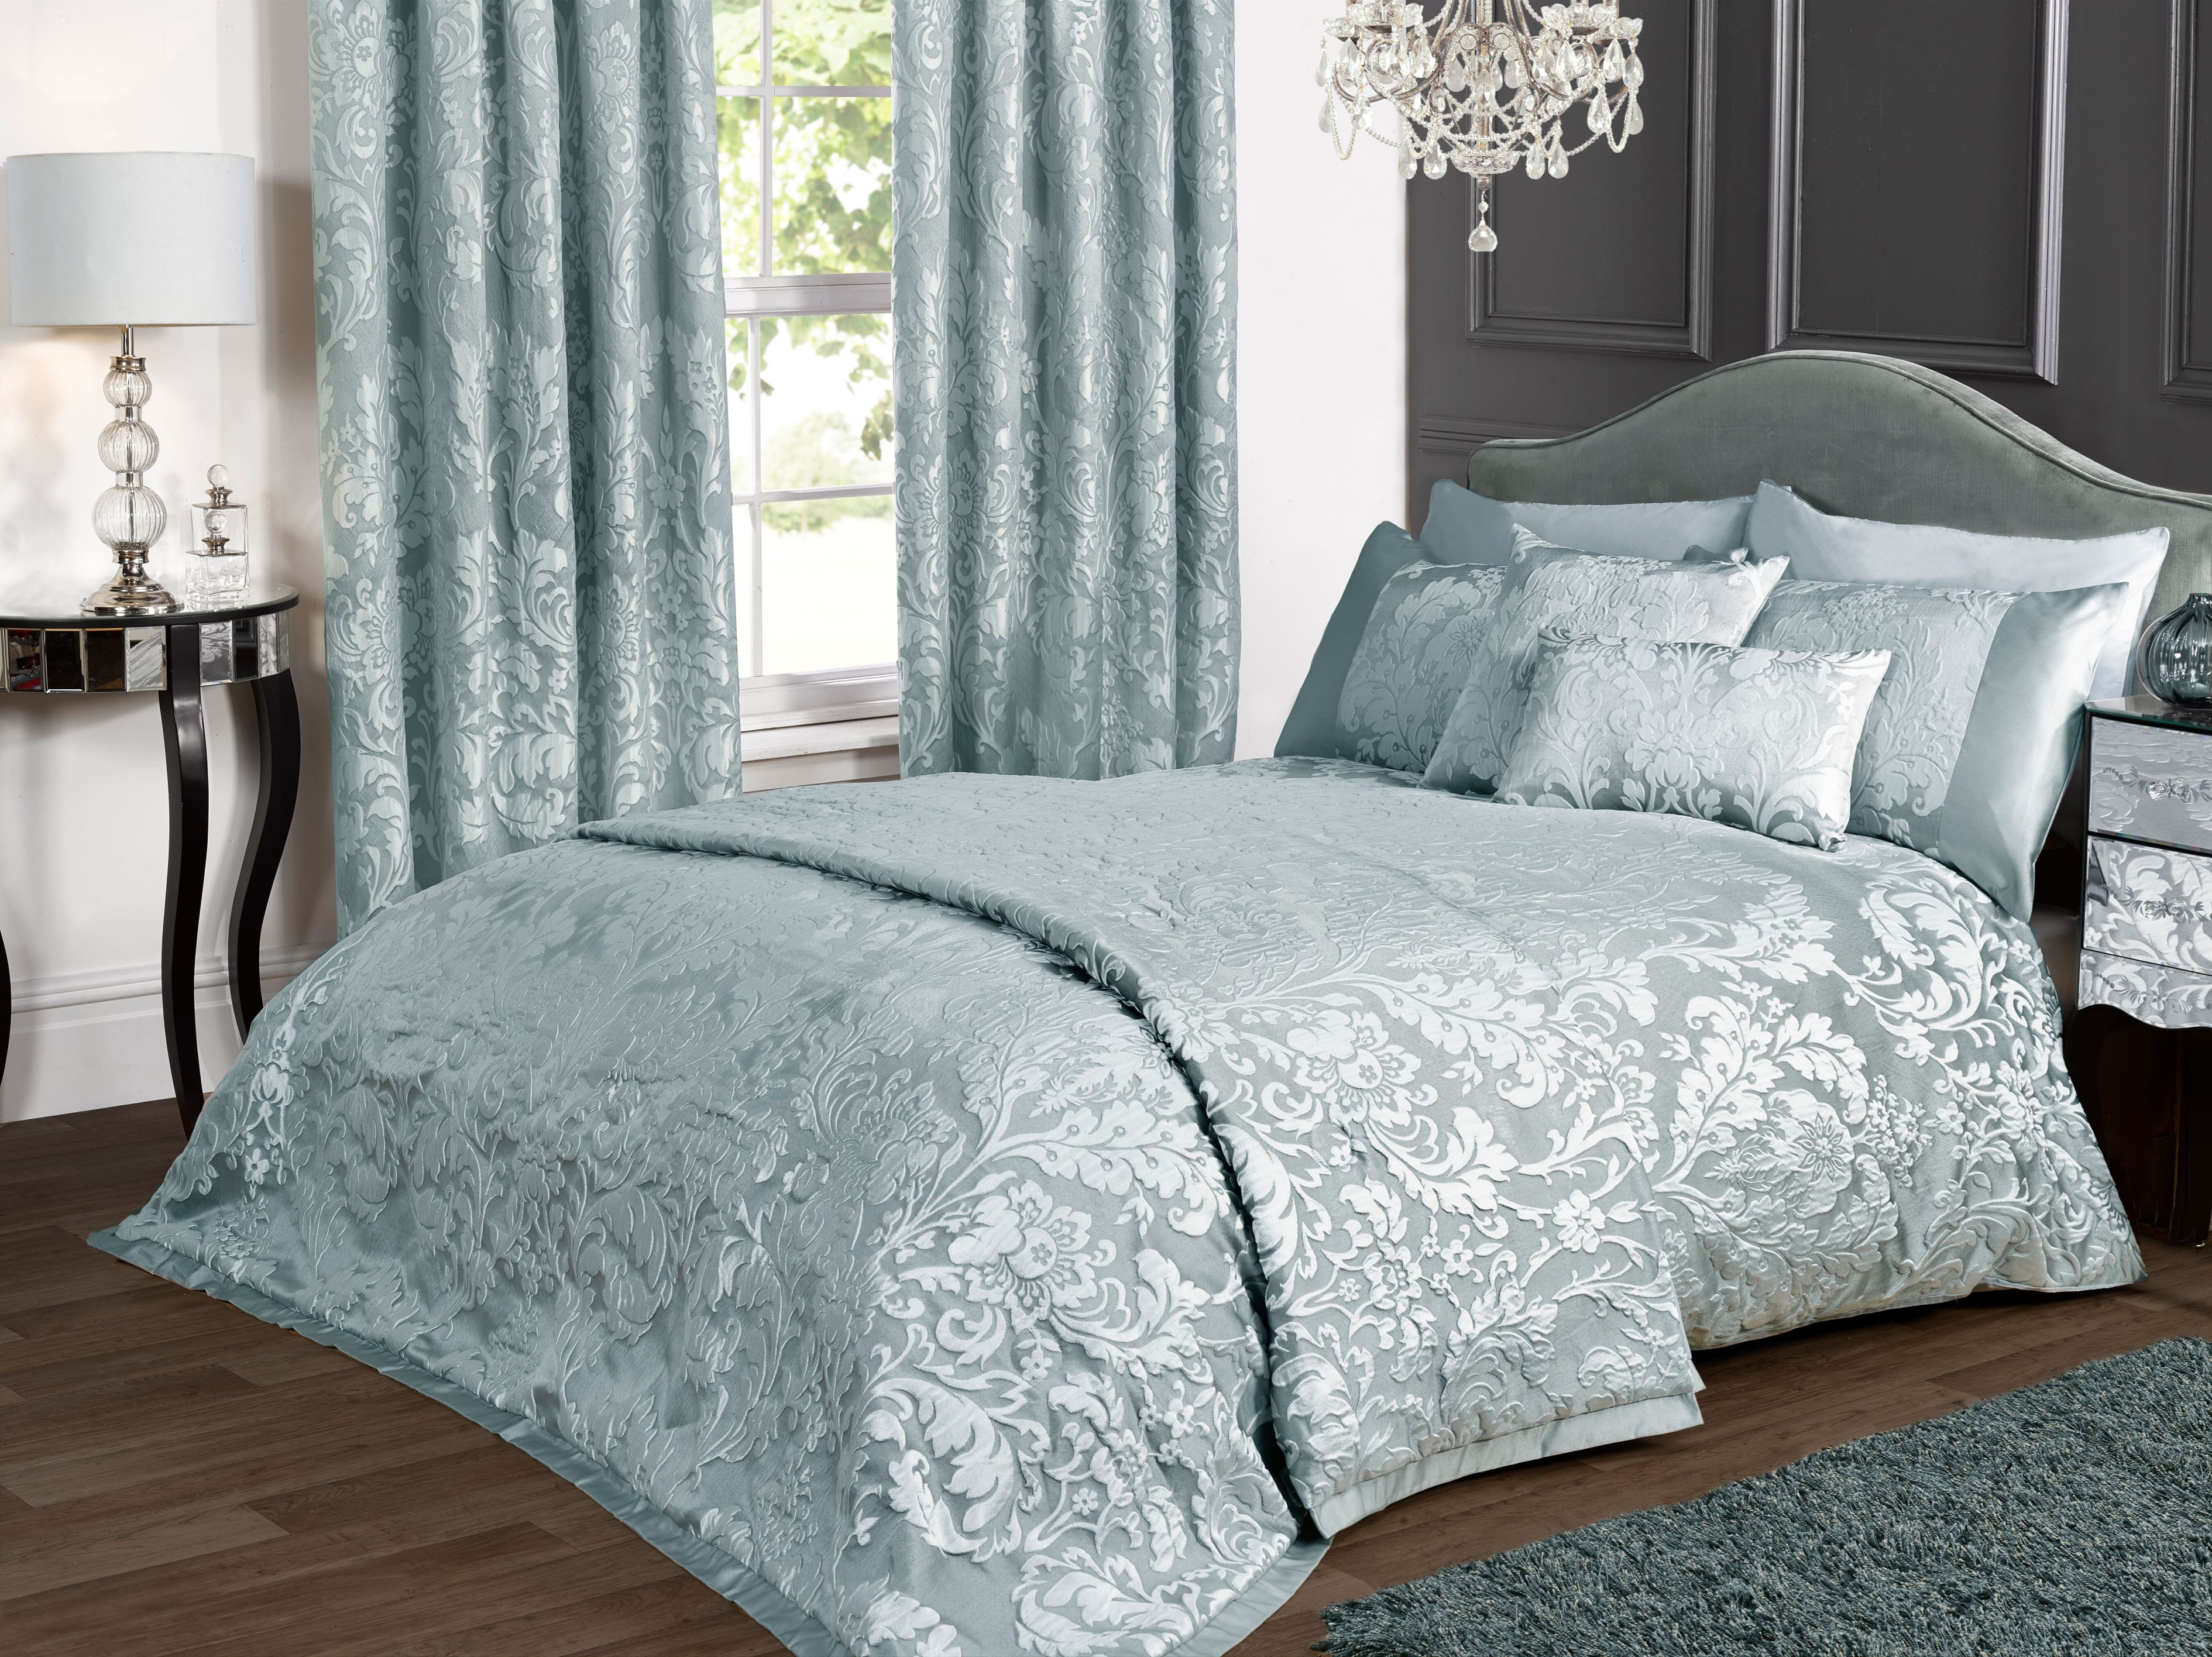 charleston duck egg blue jacquard bed linen collection items sold separately ebay. Black Bedroom Furniture Sets. Home Design Ideas